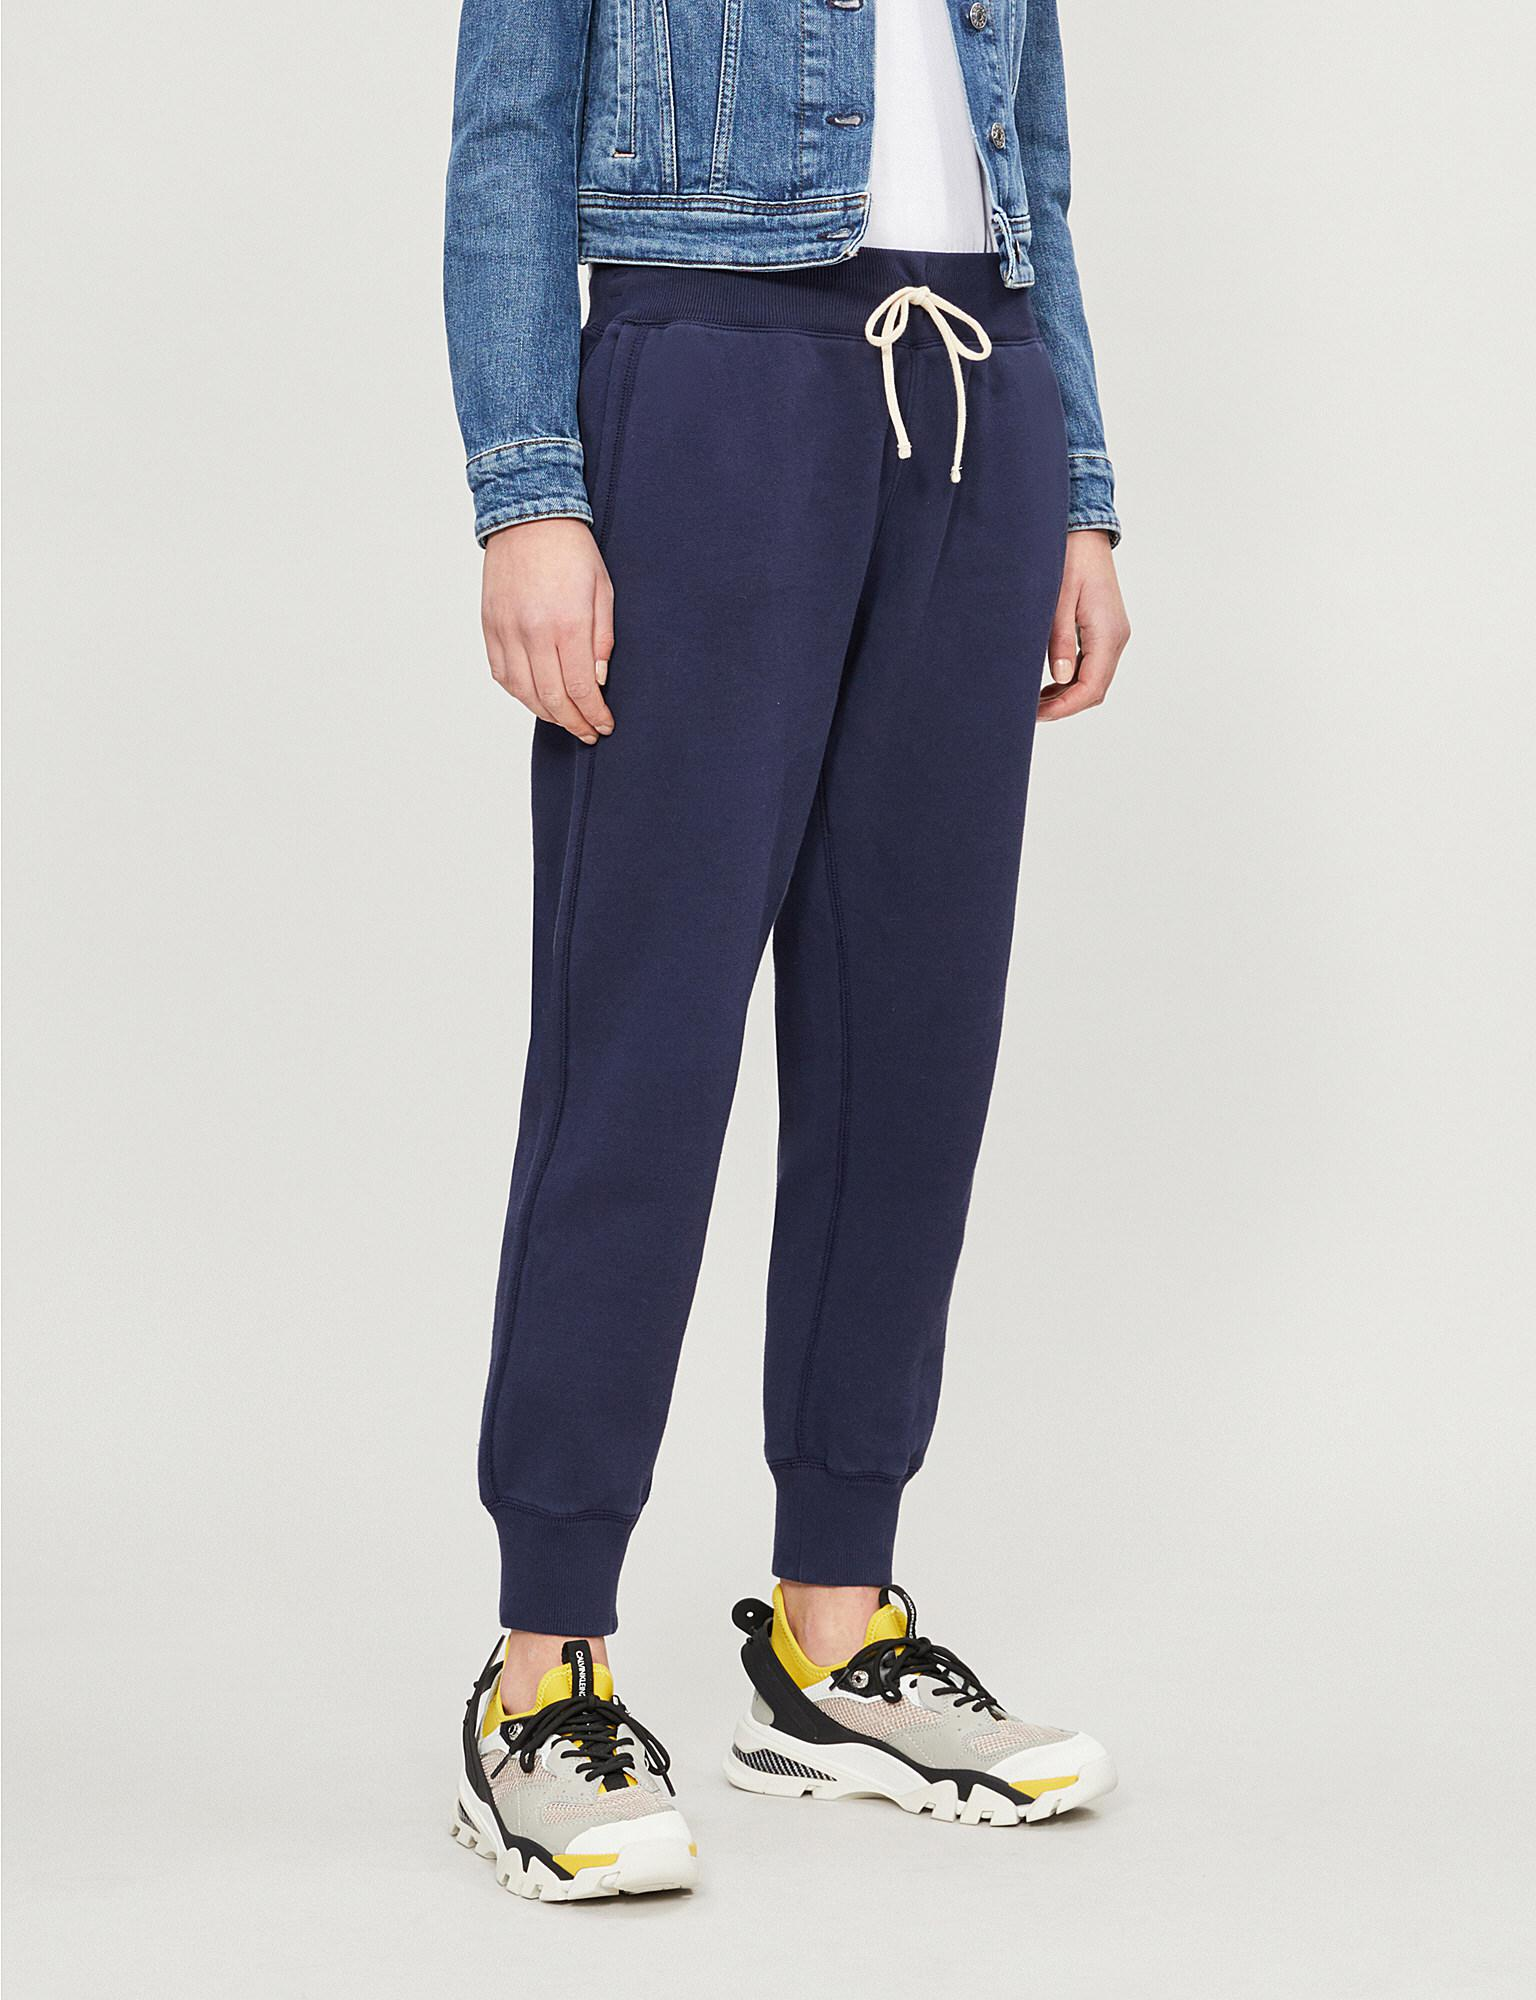 c6ba2366474f Lyst - Polo Ralph Lauren Pony Icon Cotton-blend Tracksuit Bottoms in ...